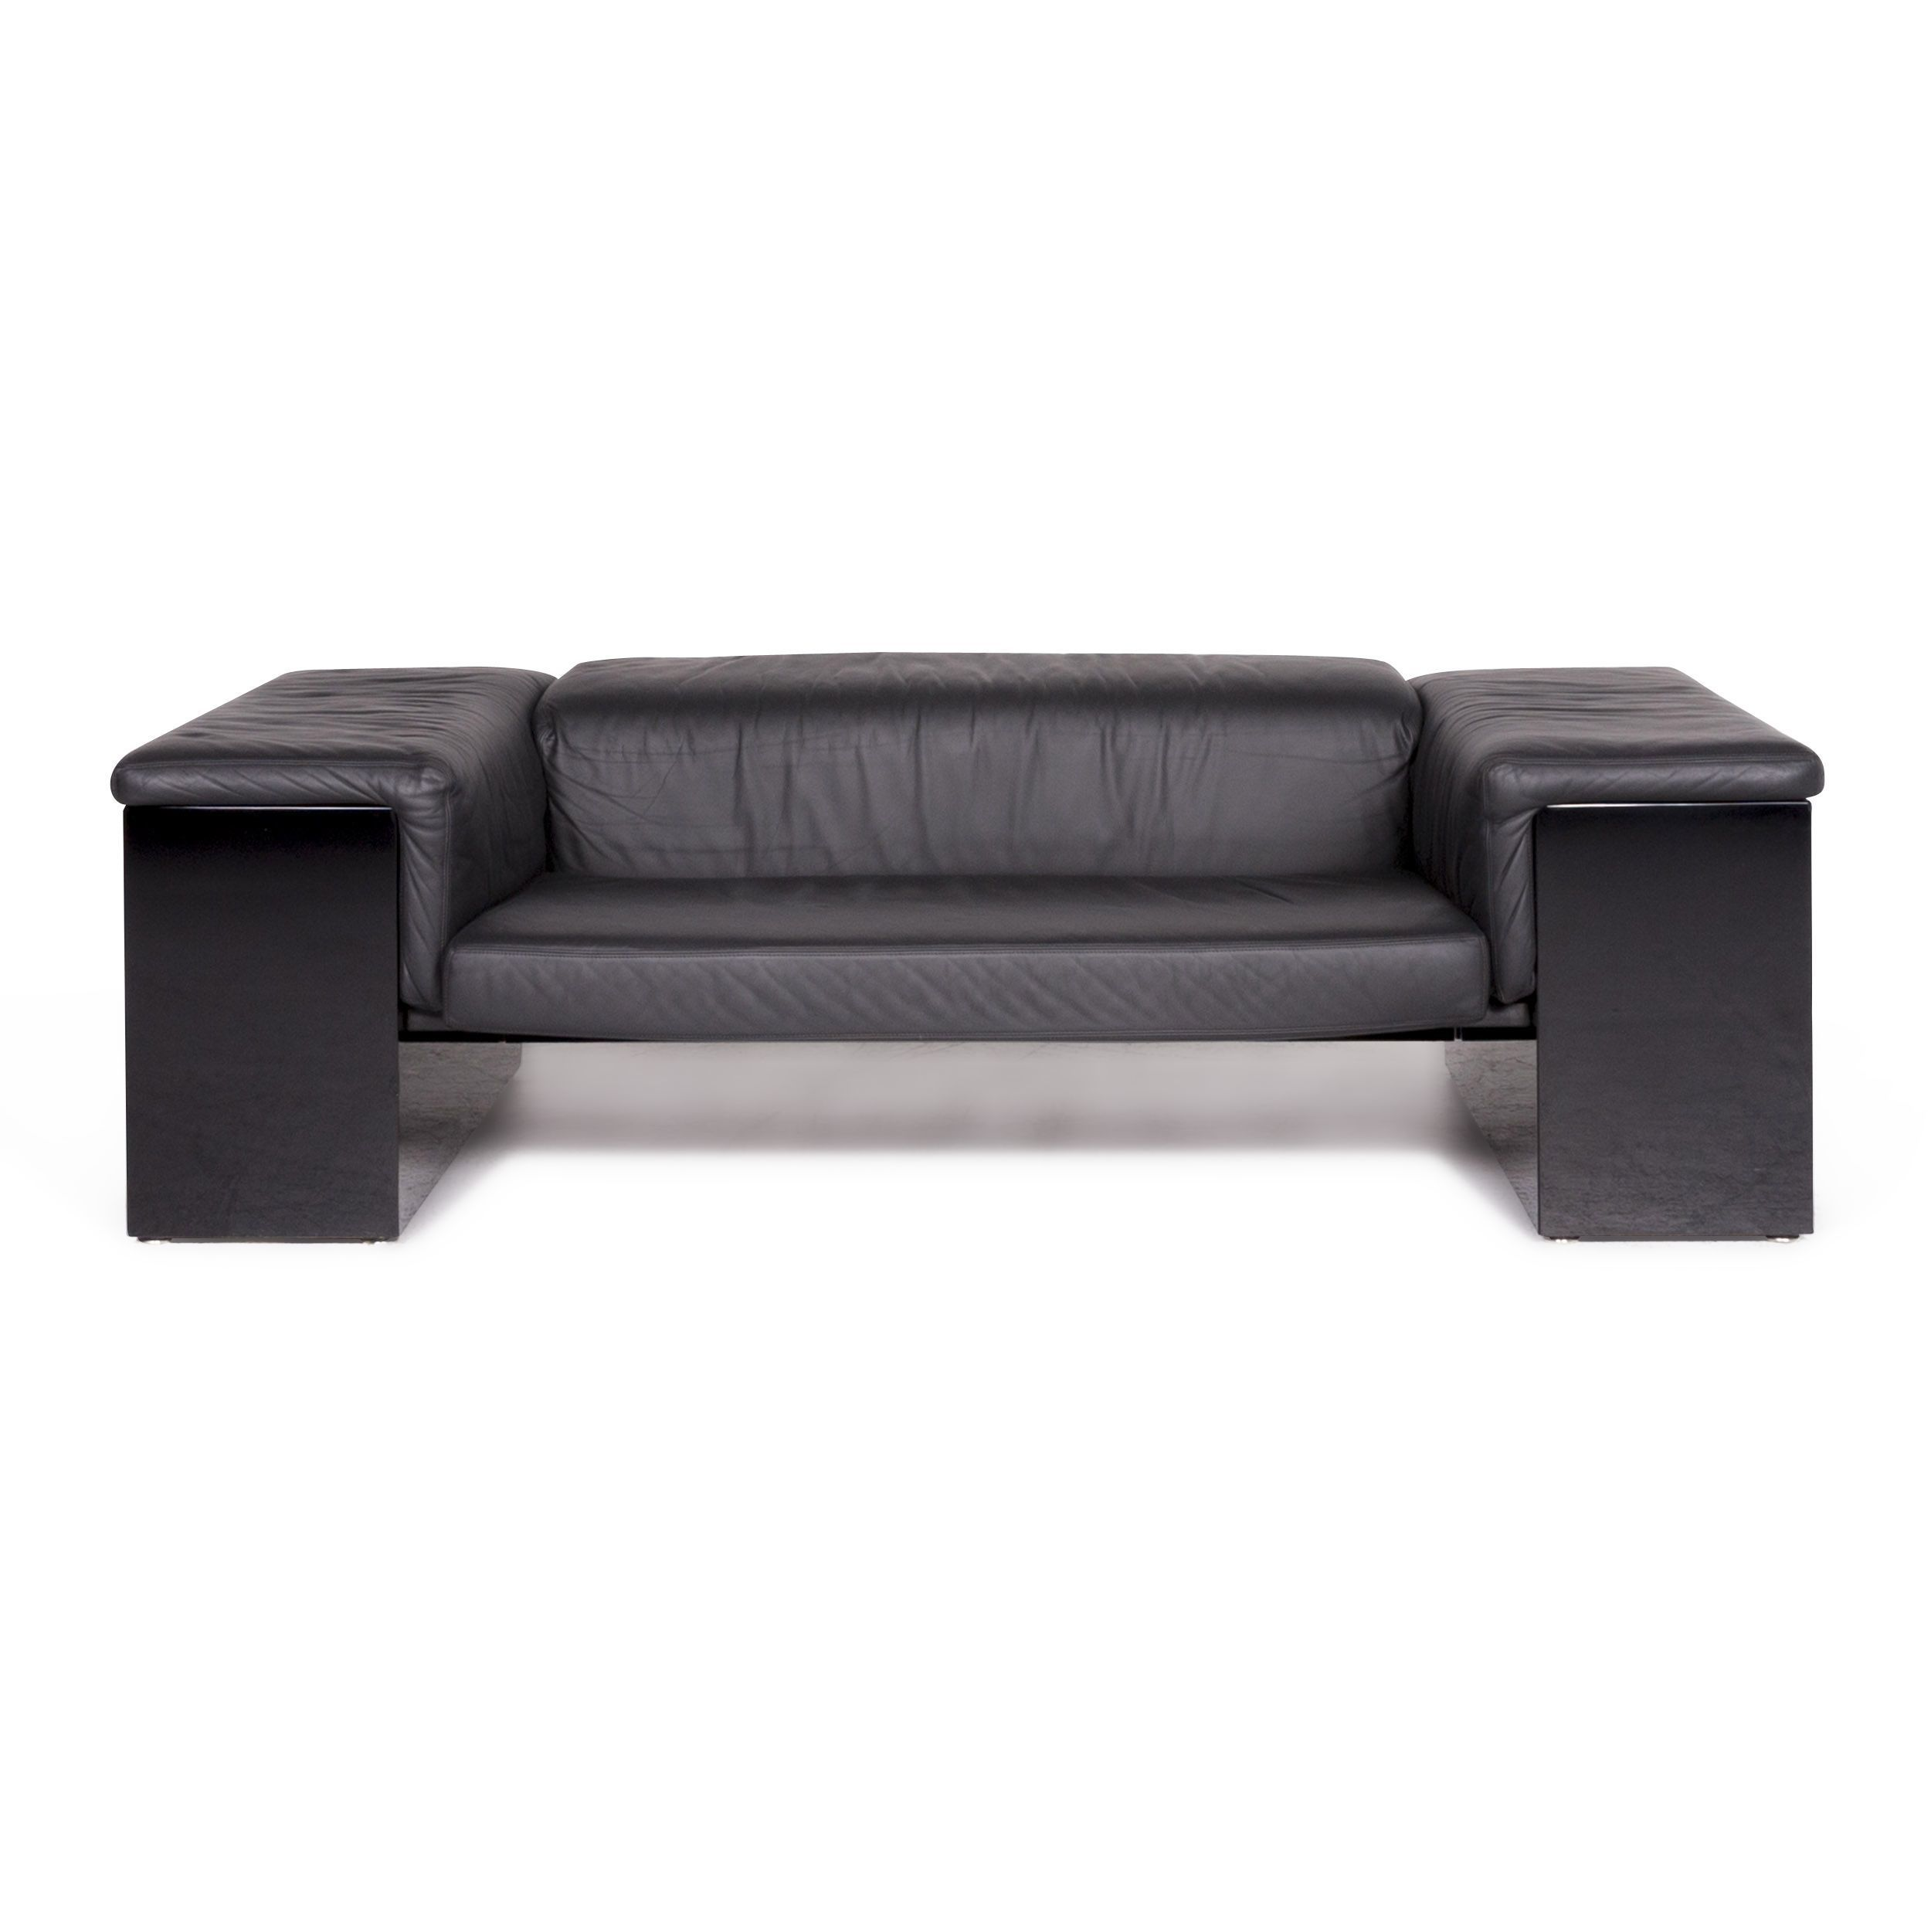 Walter Knoll Sofa Walter Knoll International Brigadier Designer Leather Sofa Black Cini Boeri Two Seater Couch 9047